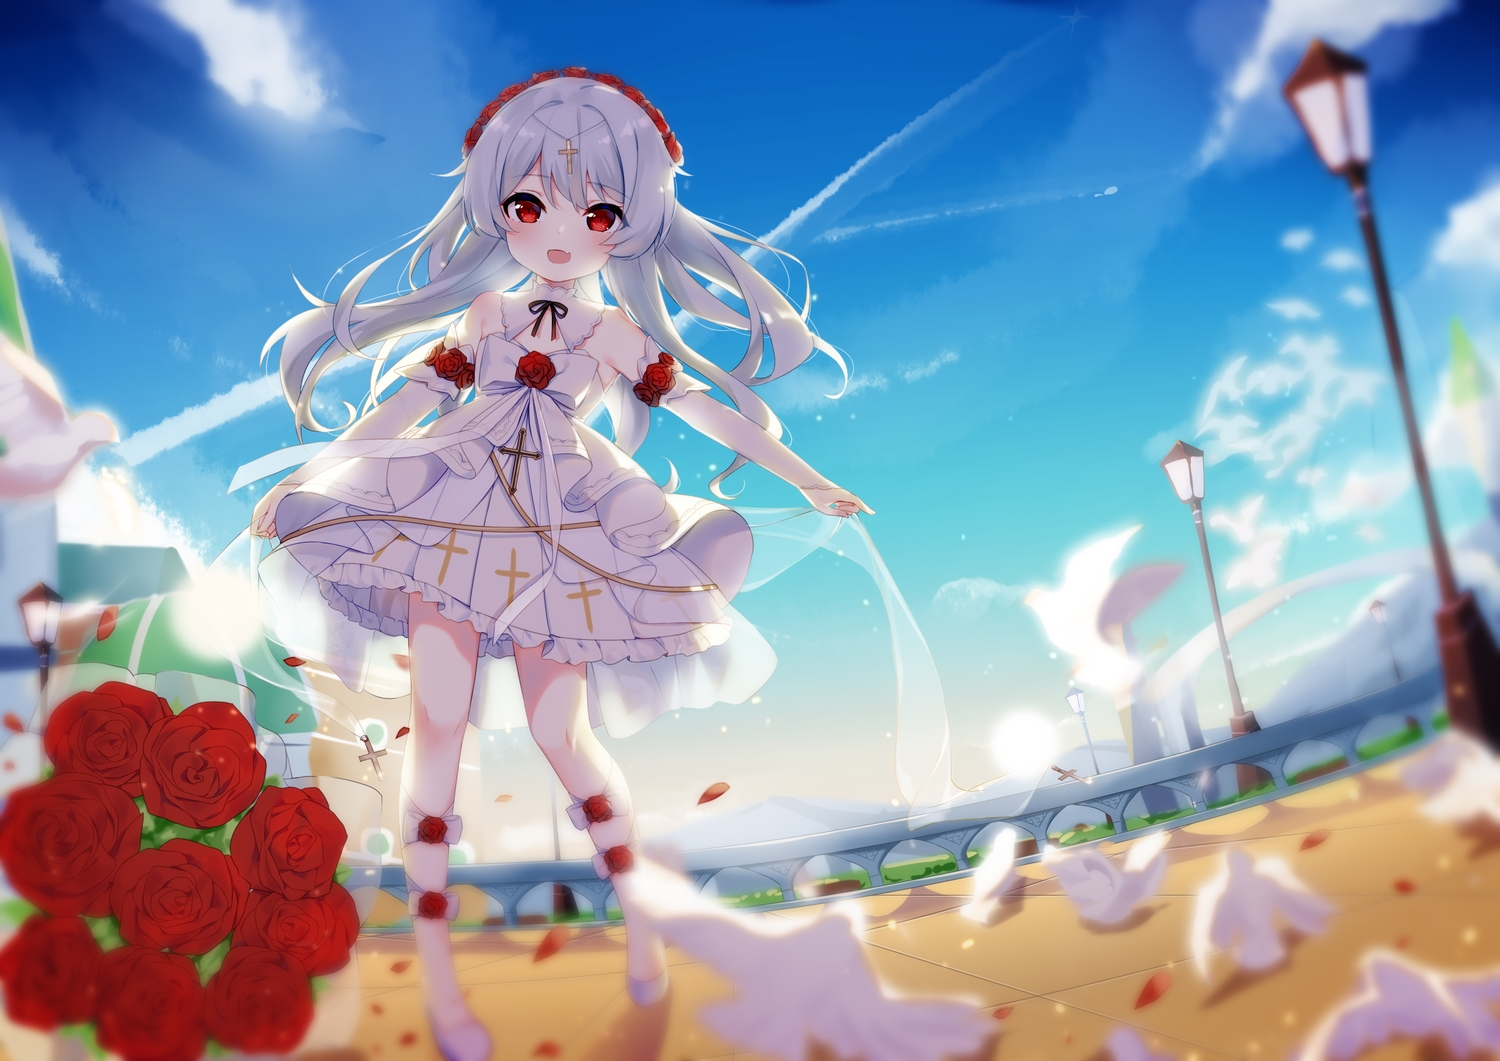 animal bird bow clouds cross fang flowers fufumi headdress honkai_impact loli lolita_fashion long_hair petals red_eyes rose sky theresa_apocalypse white_hair